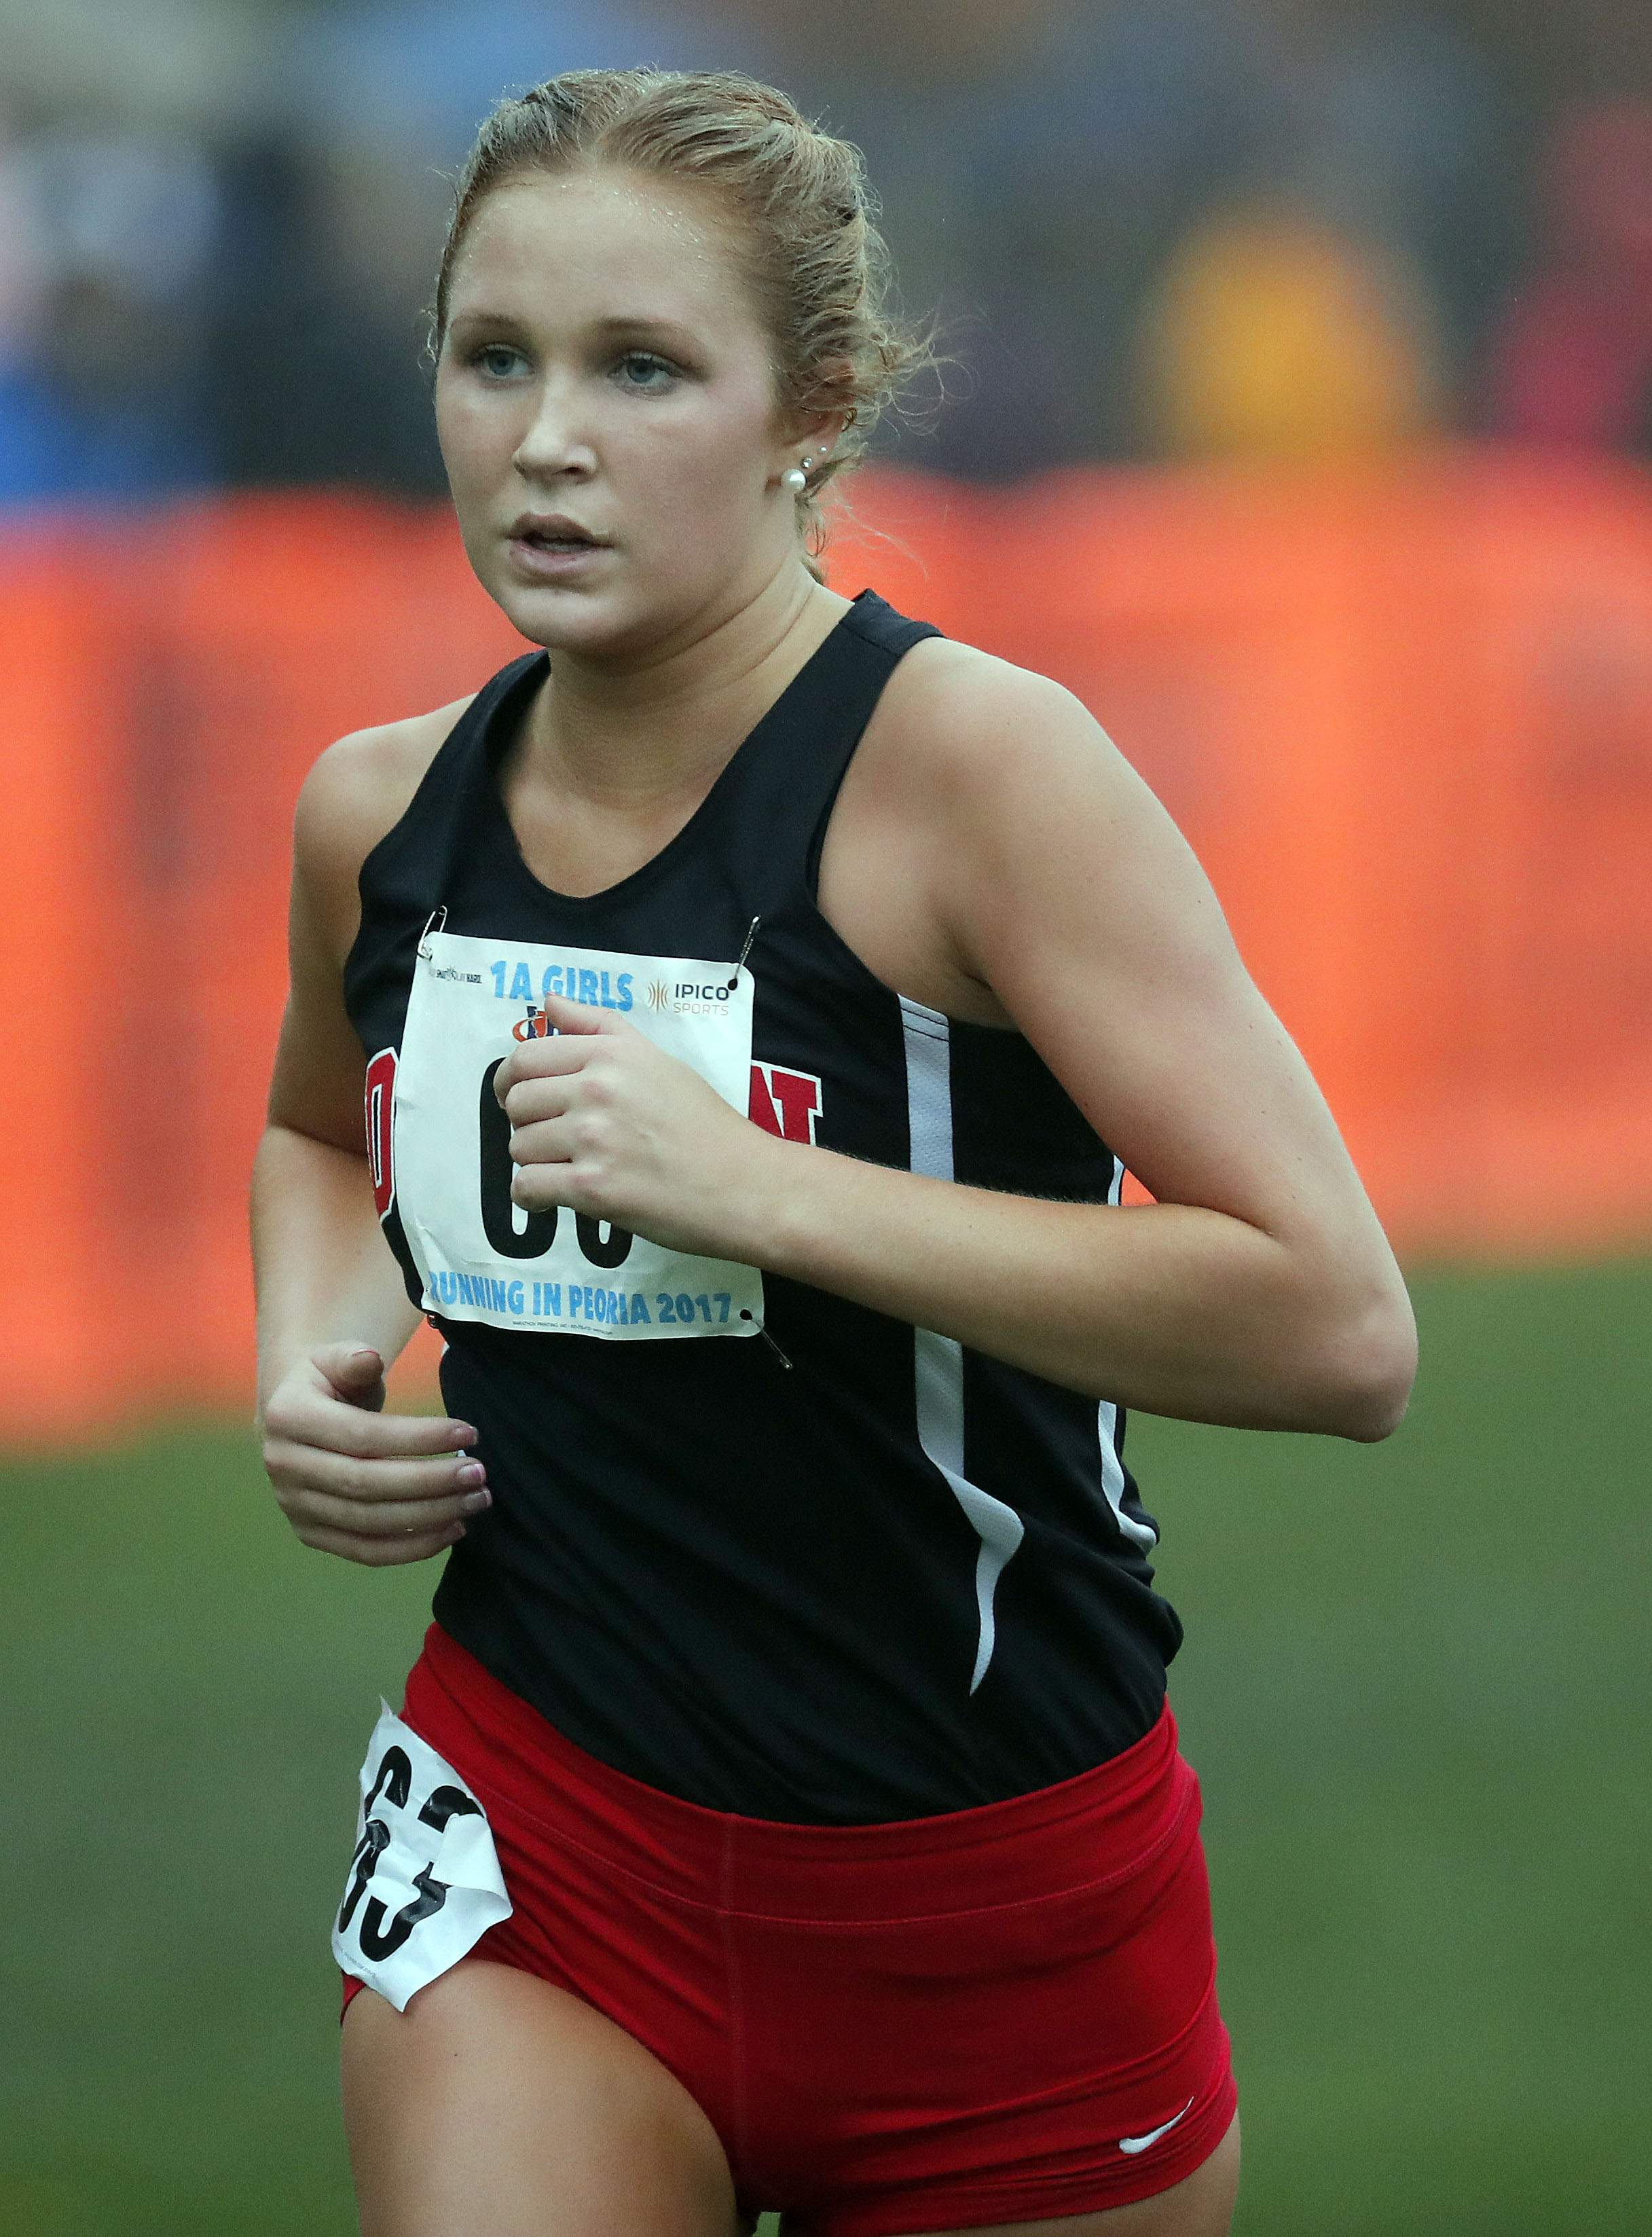 DuQuoin's Olivia Cravens heads to the finish line during girls Class 1A cross-country finals Saturday in Peoria.